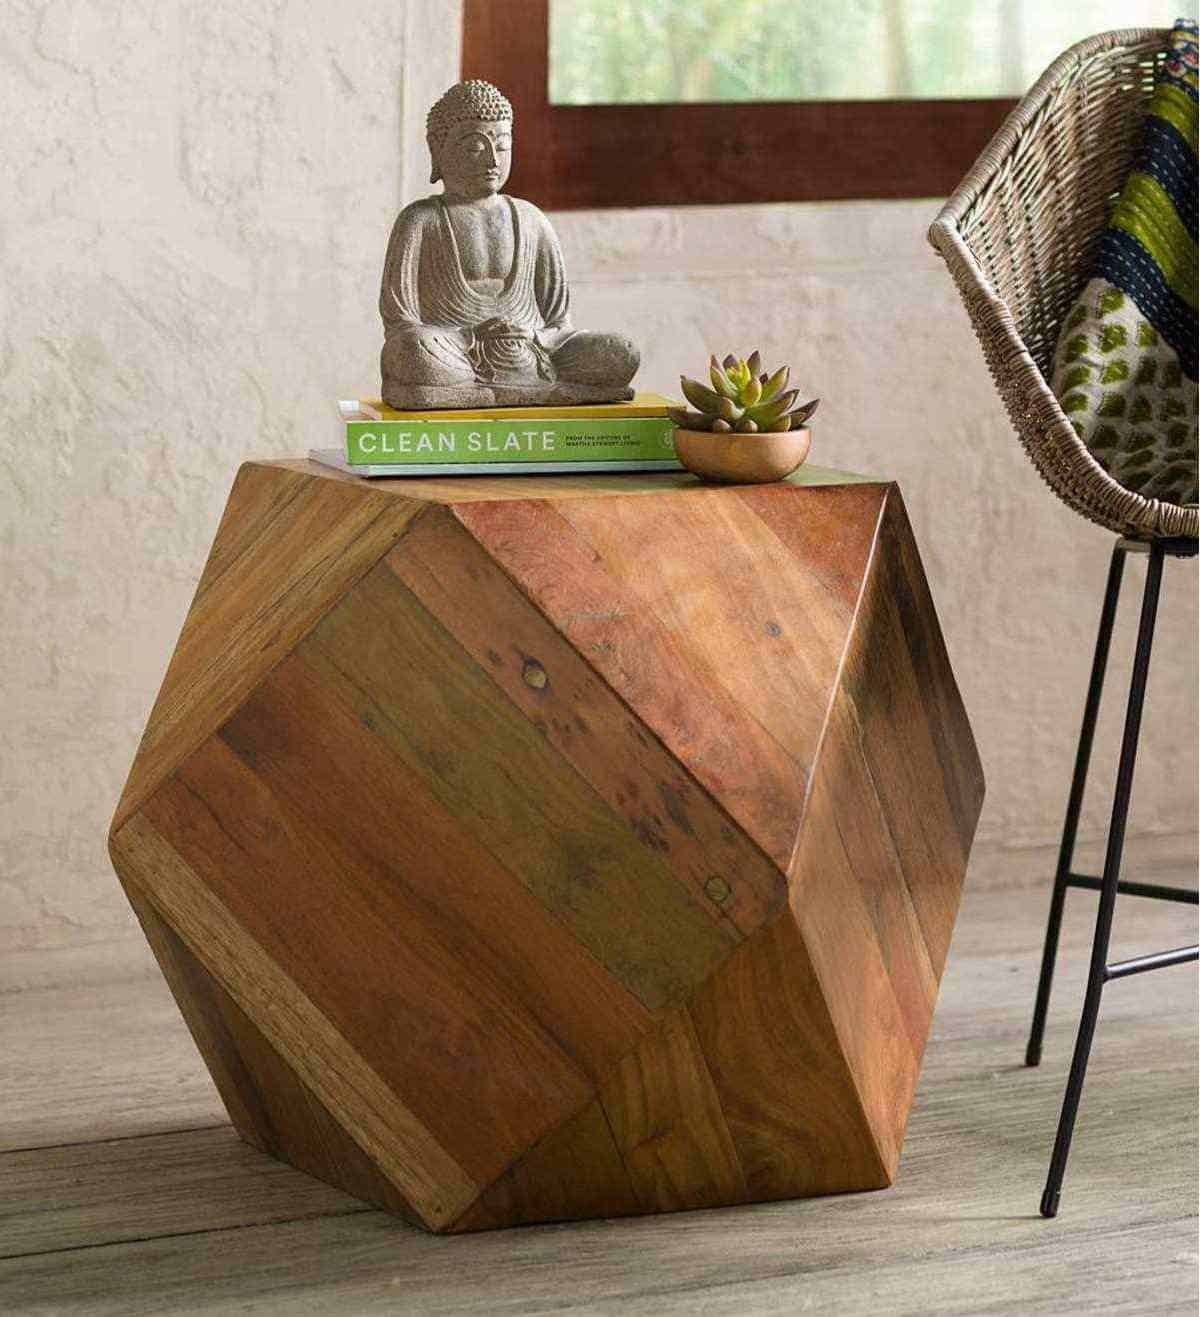 Shopping for Sustainable Furniture? Here's our list of the most eco friendly brands creating artisan show-pieces for any home… Image by Vivaterra #sustainablefurniture #ecofriendlyfurniture